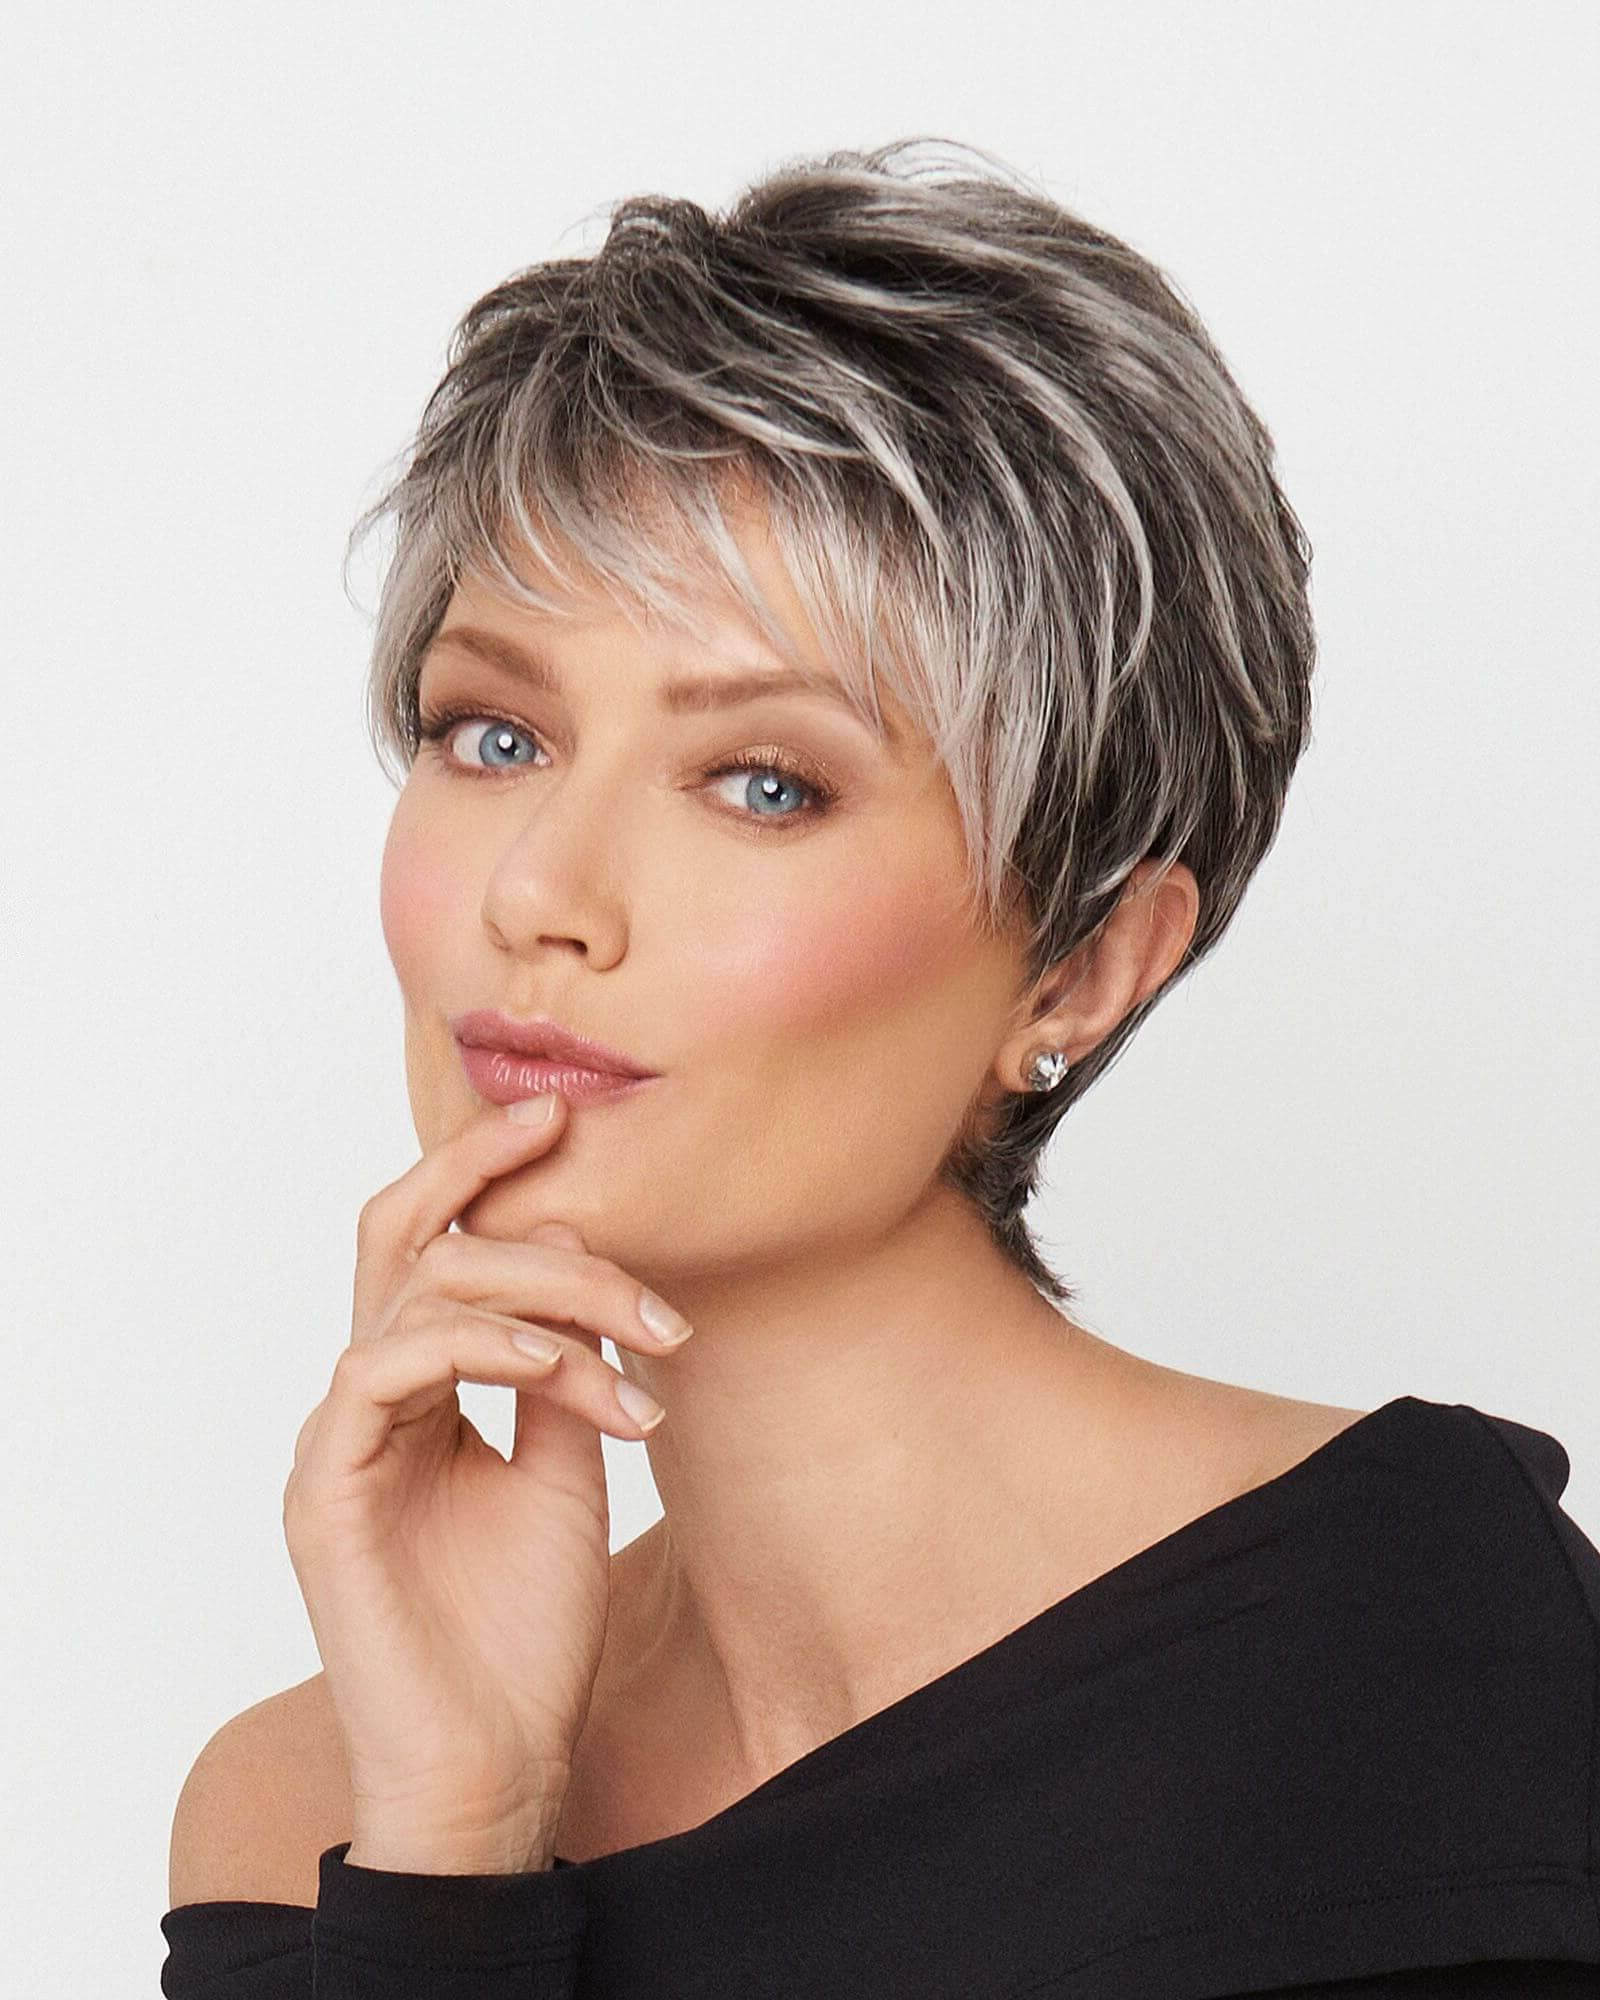 50 Pixie Haircuts You'll See Trending In 2019 With Classy Pixie Haircuts (View 10 of 20)